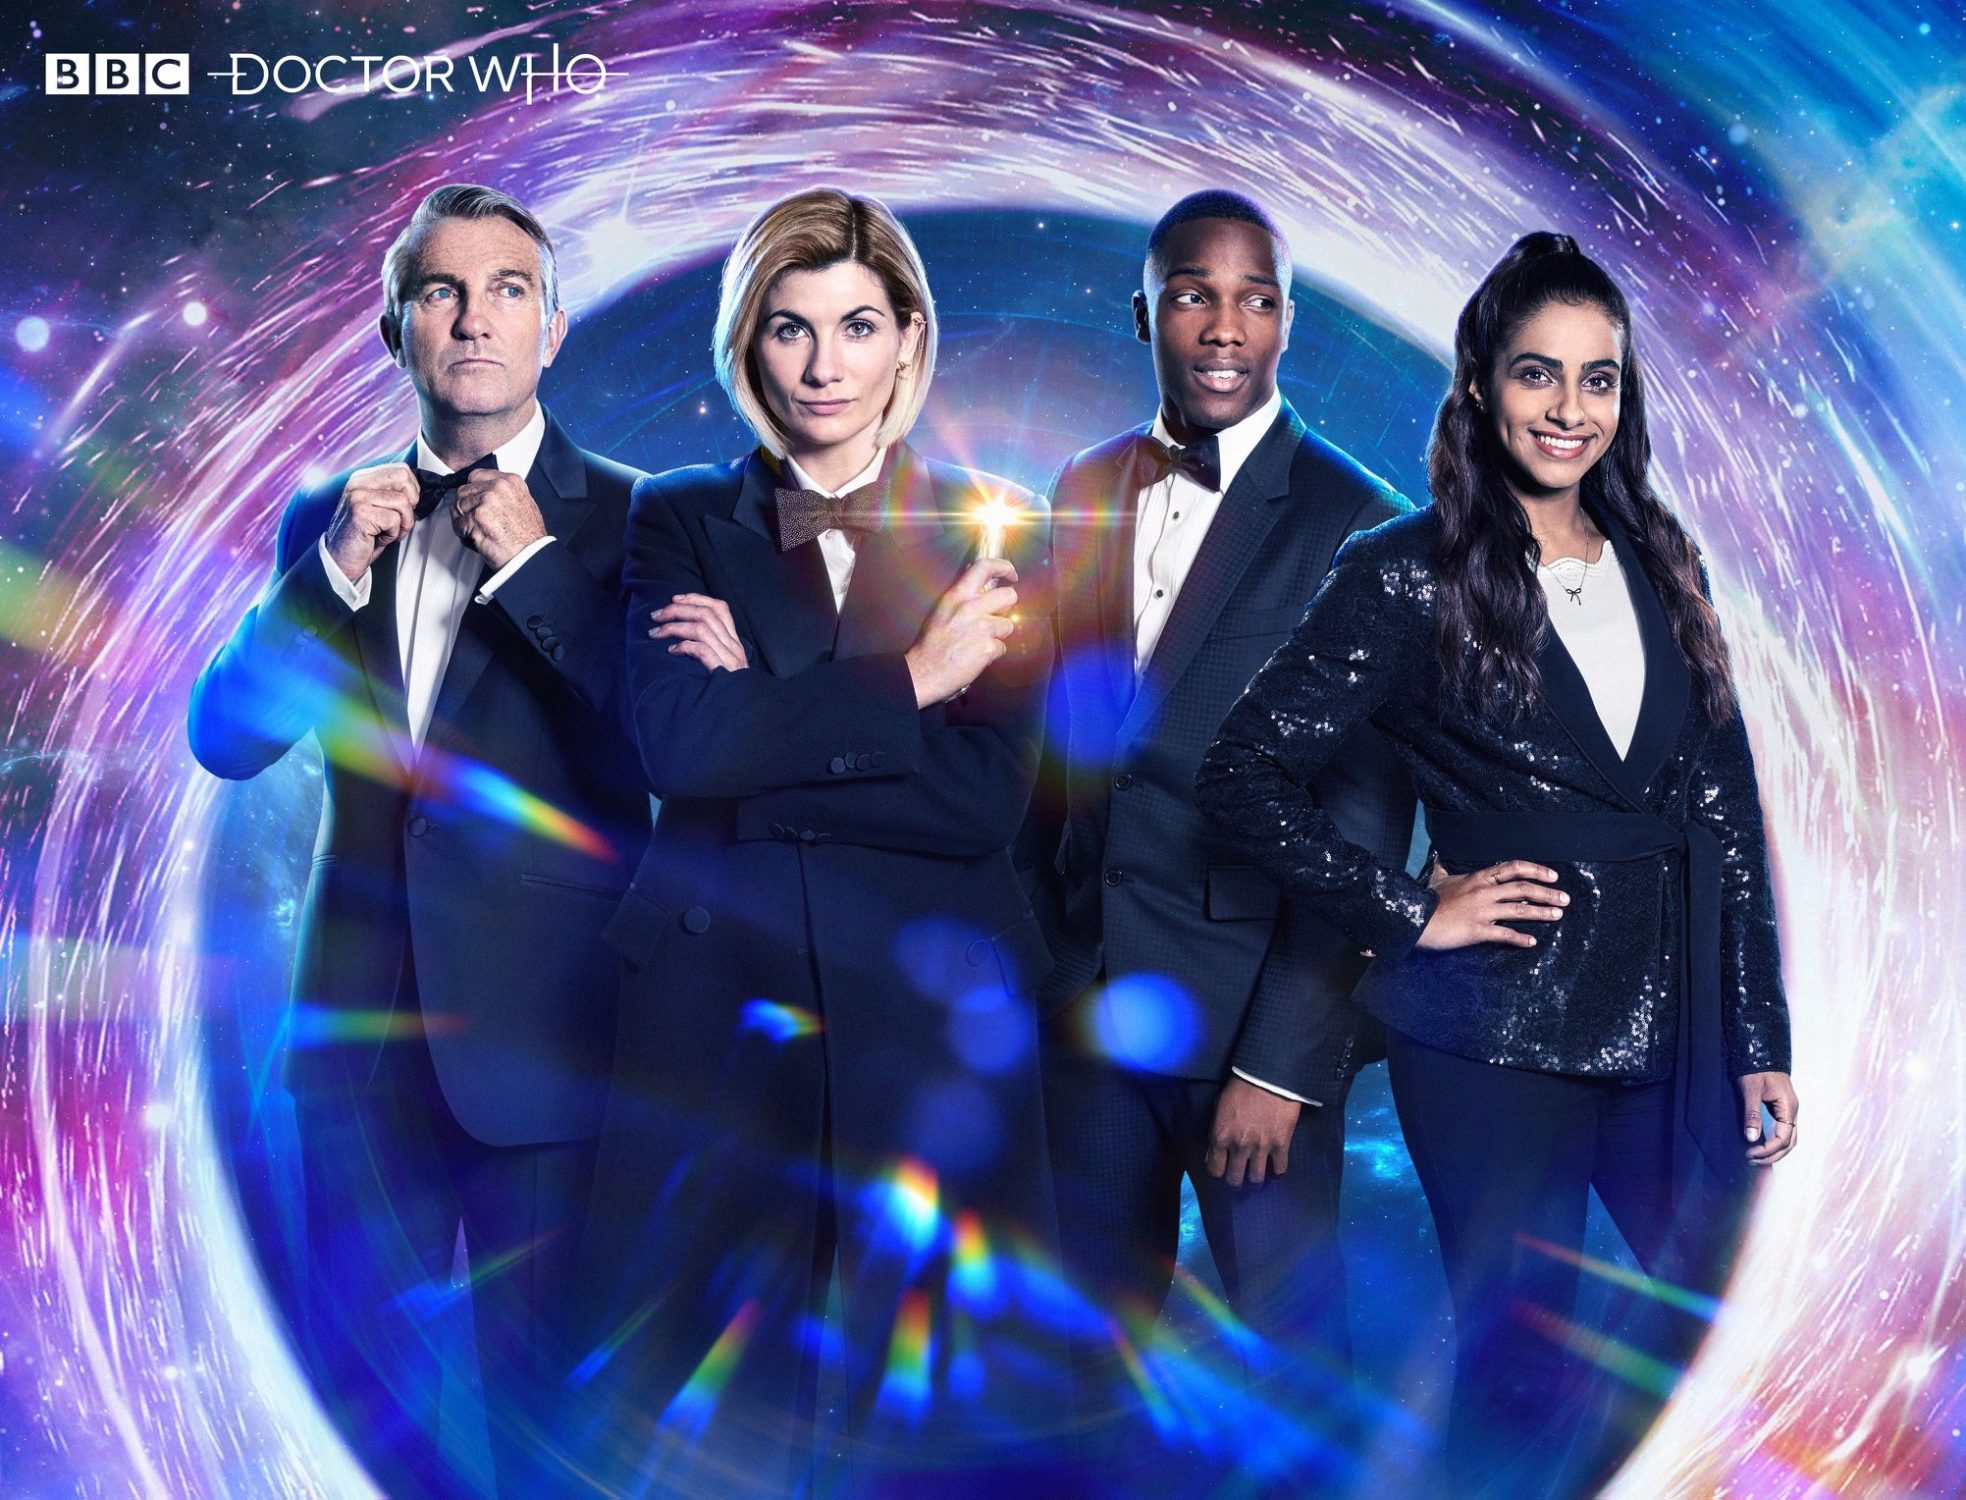 Doctor Who Series 12 Brings Back Two-Parters, Starting with the Opener